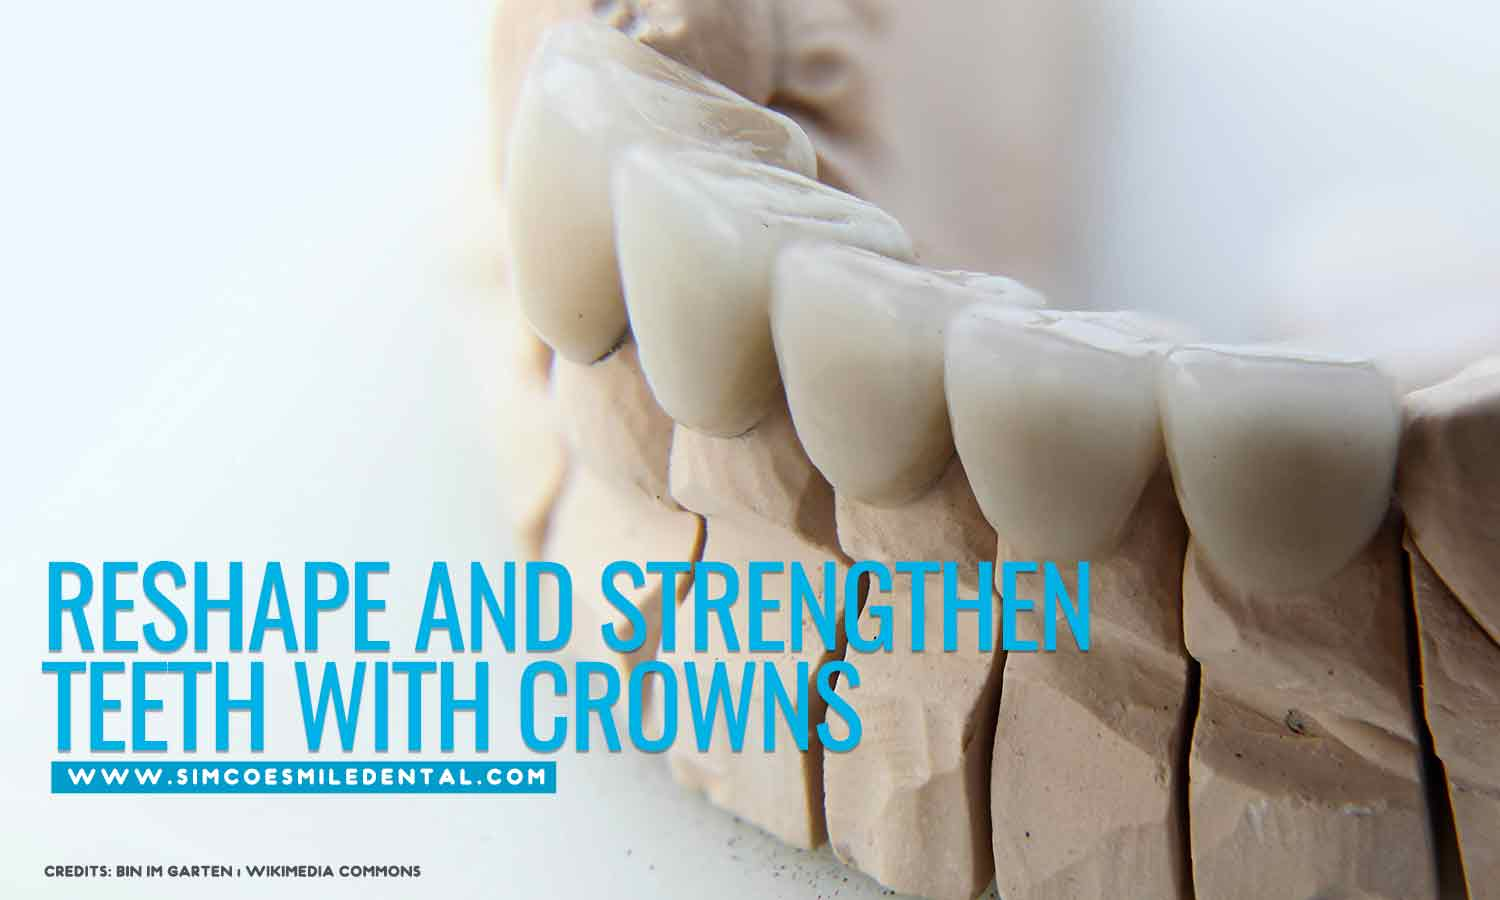 Reshape-and-strengthen-teeth-with-crowns Improve Your Smile with Cosmetic Dentistry